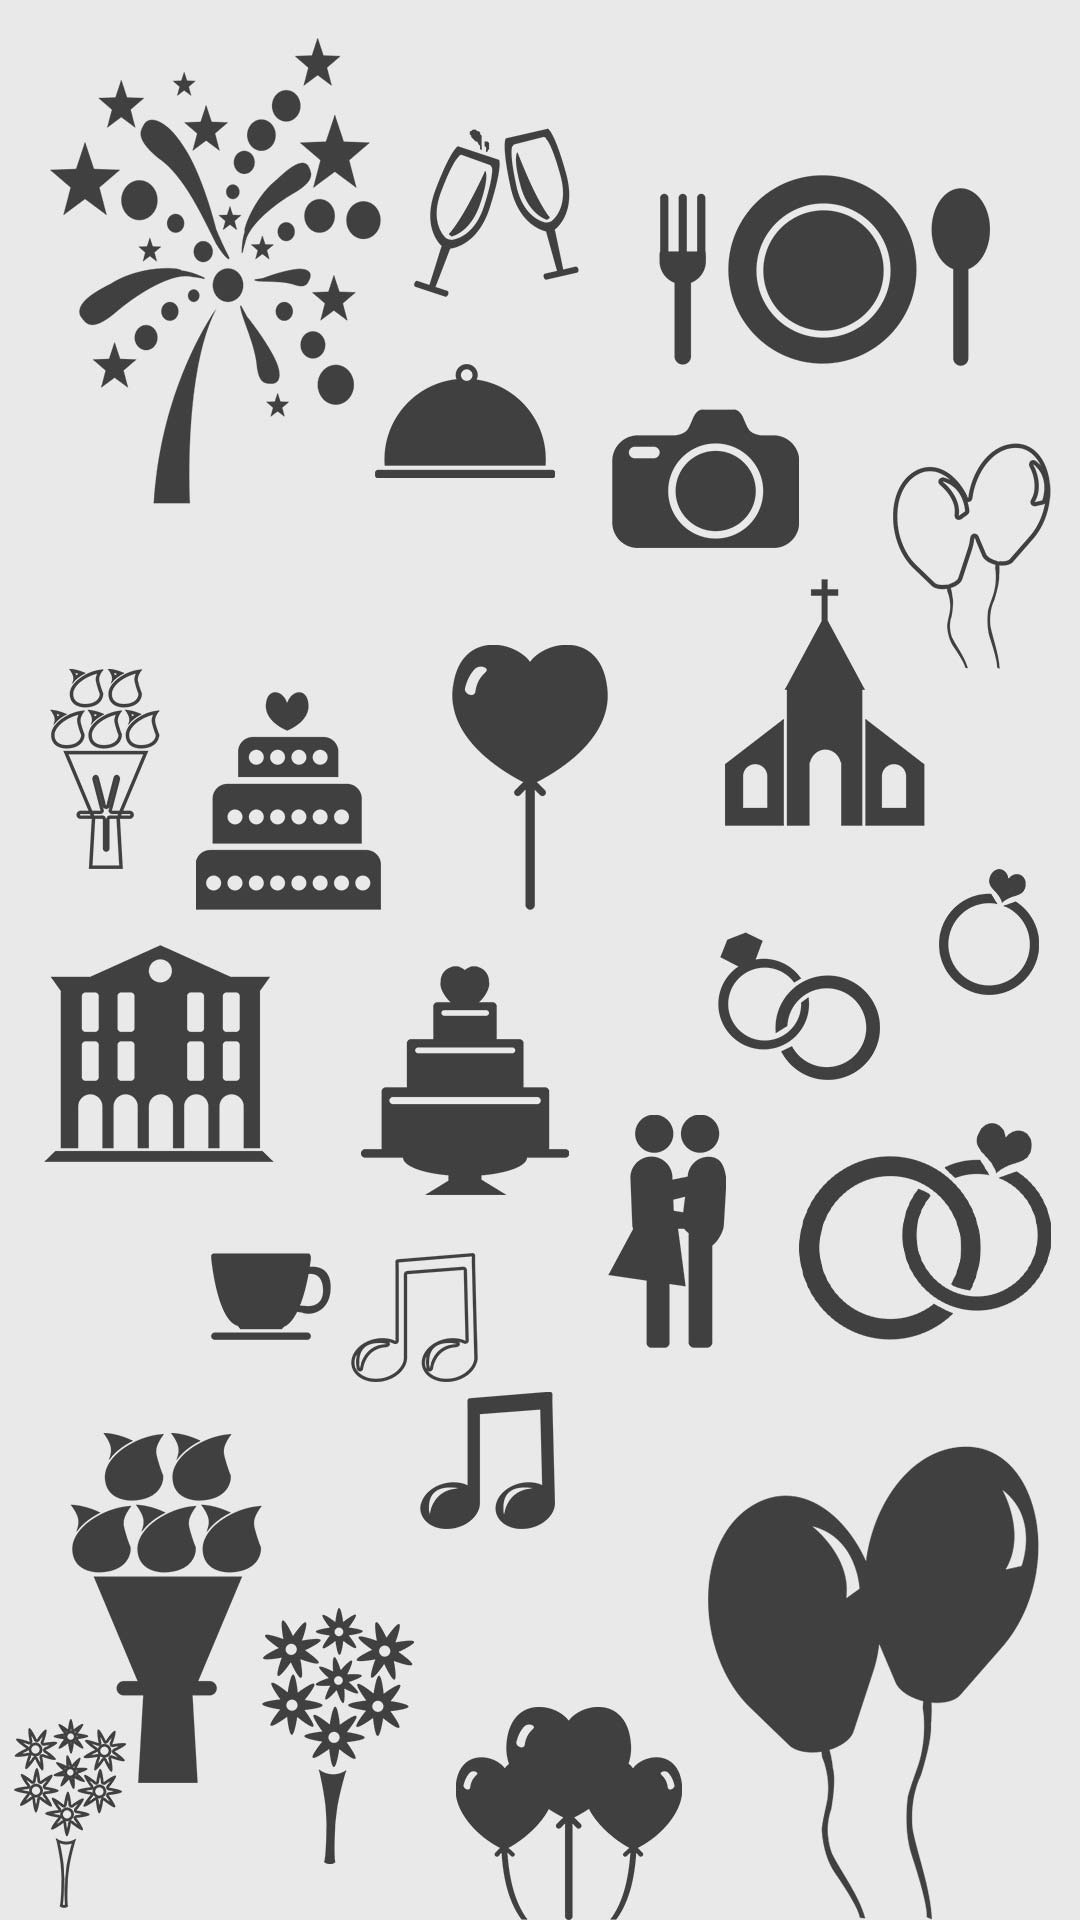 1632464452 668 Free wedding story stickers to download - Free wedding story stickers to download